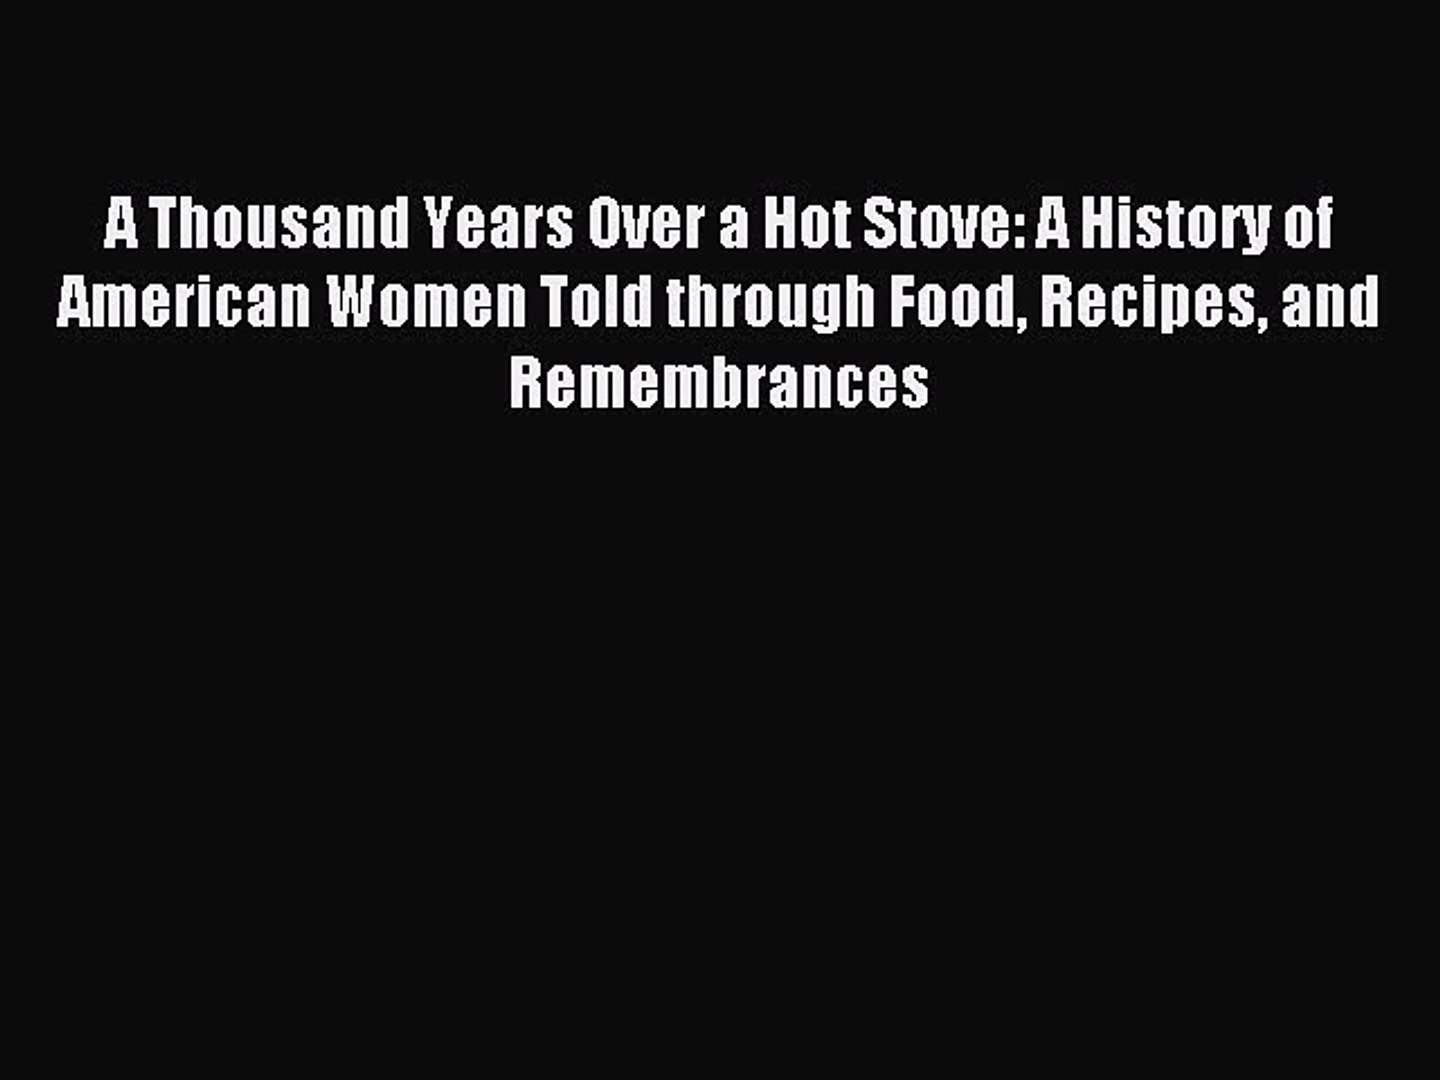 Download A Thousand Years Over a Hot Stove: A History of American Women Told through Food Recipes